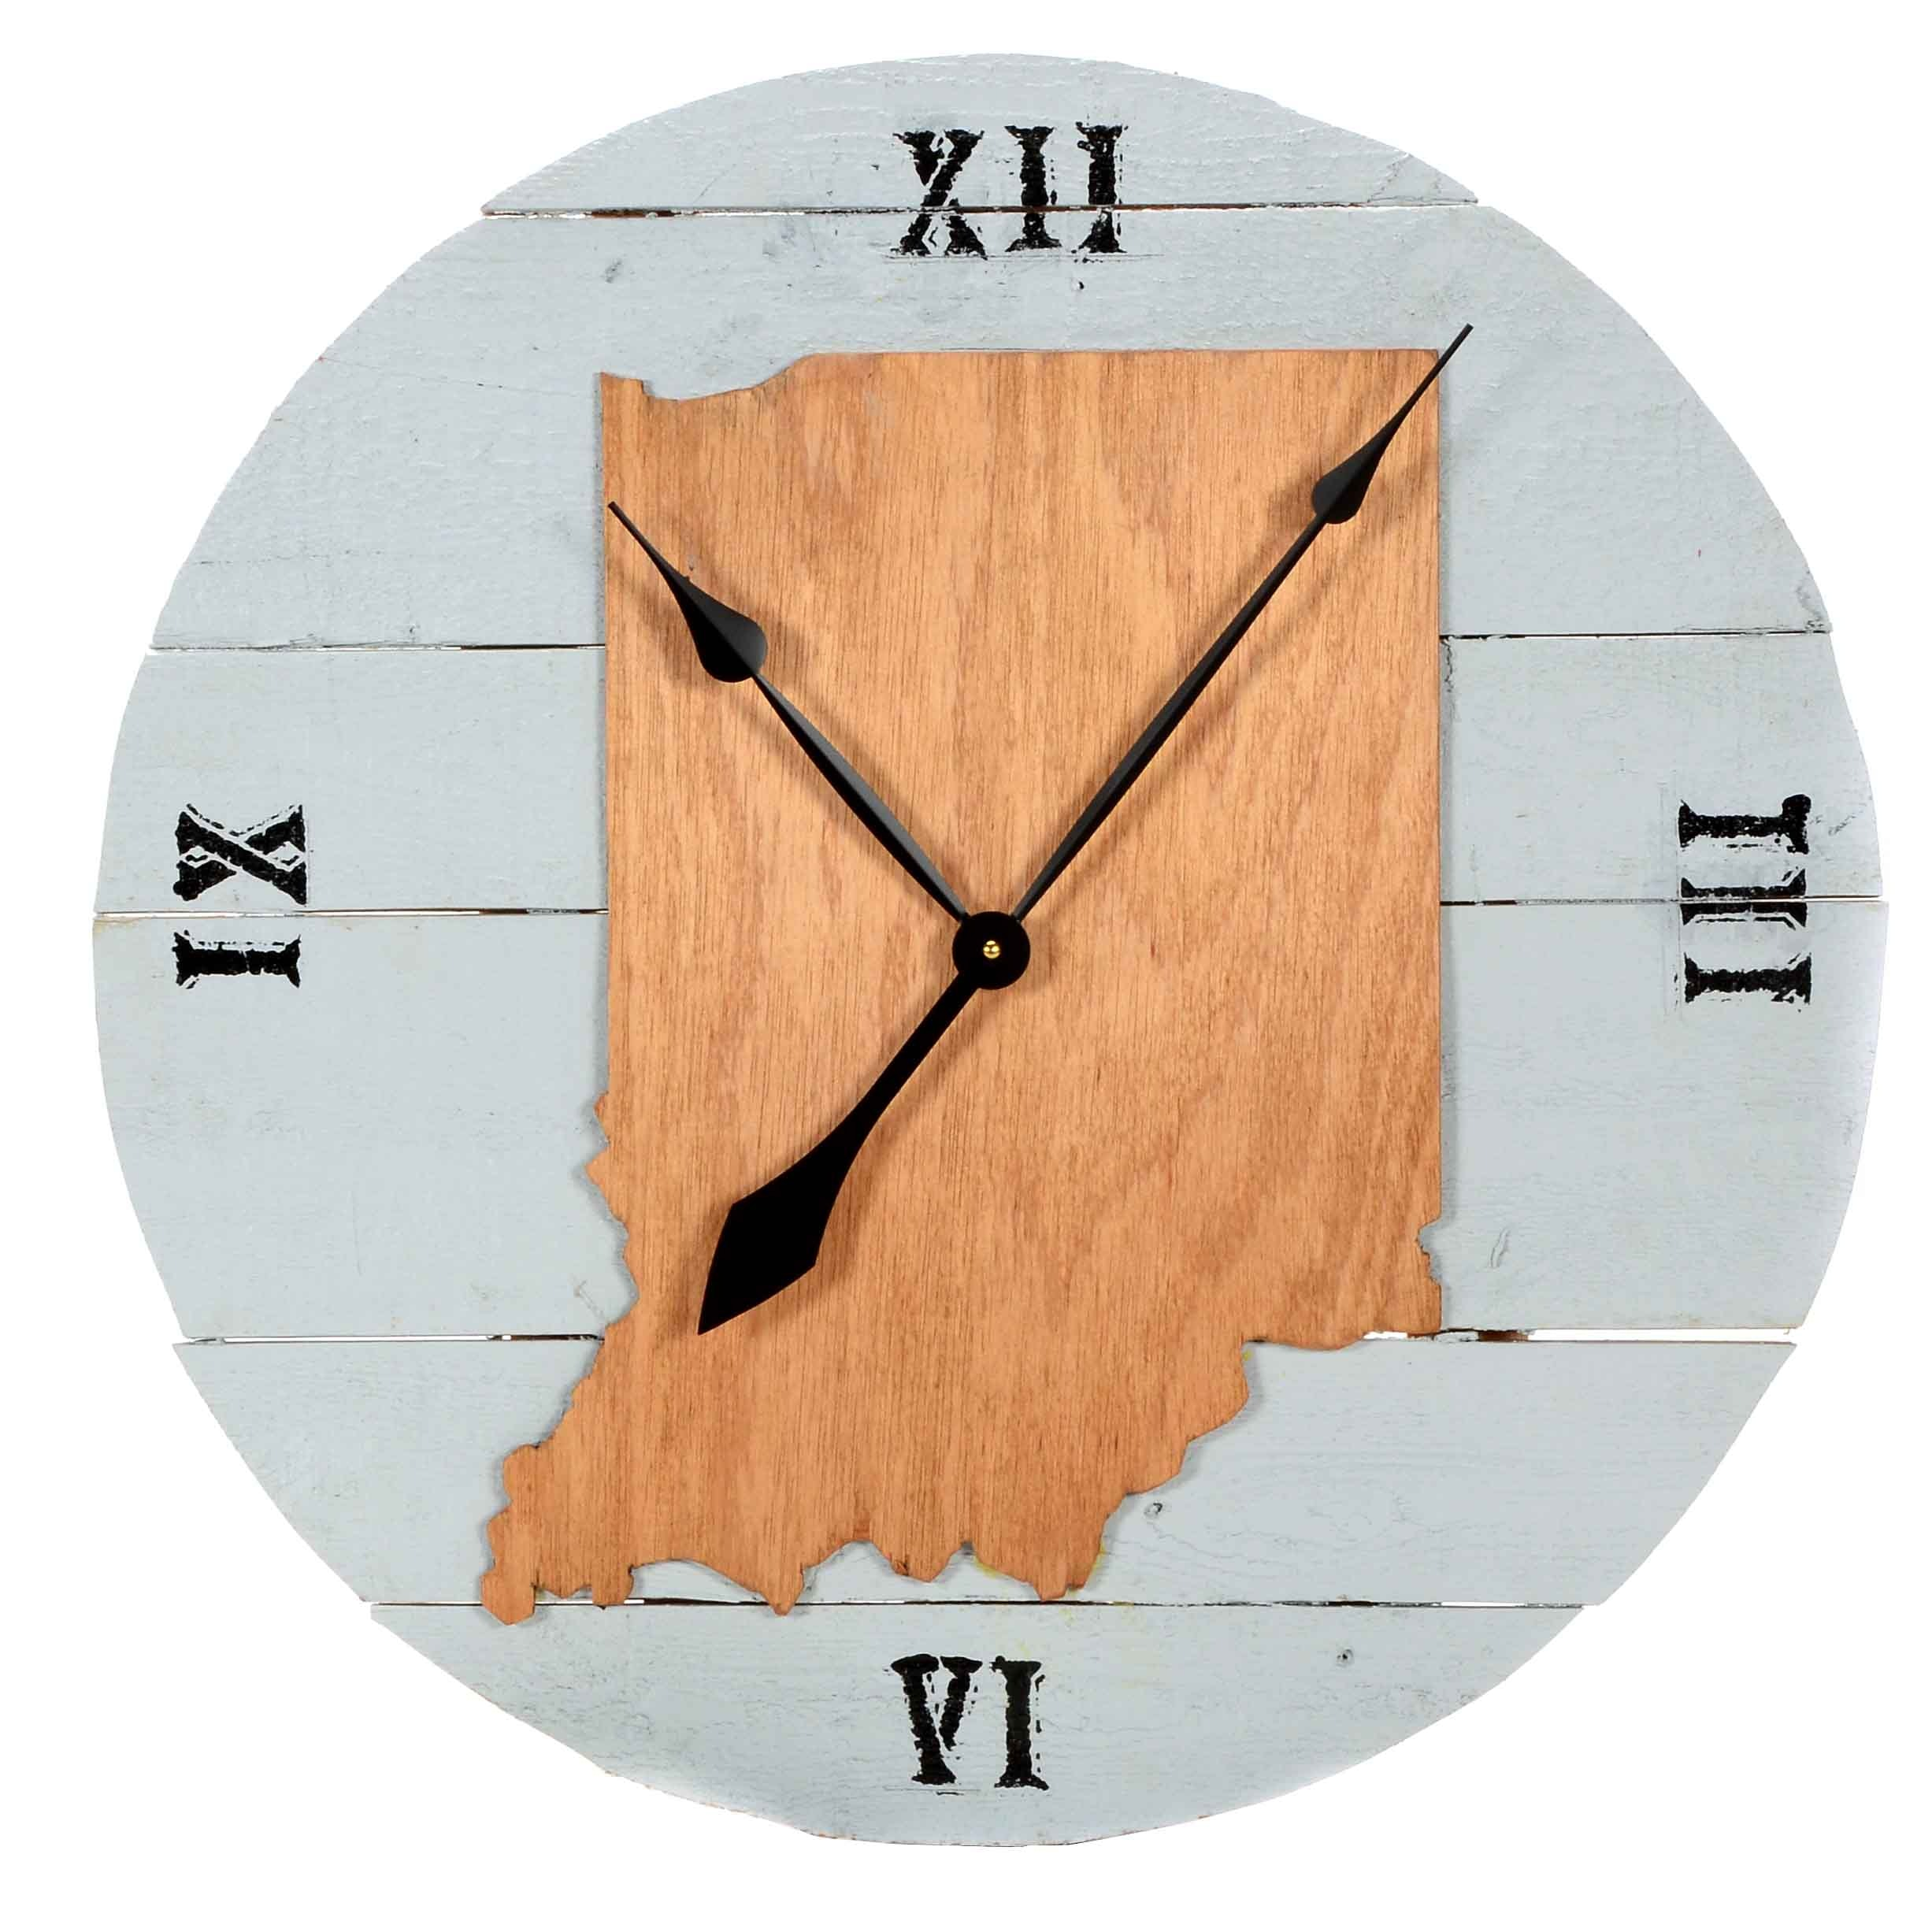 Artisan Crafted Indiana Themed Wood Wall Clock